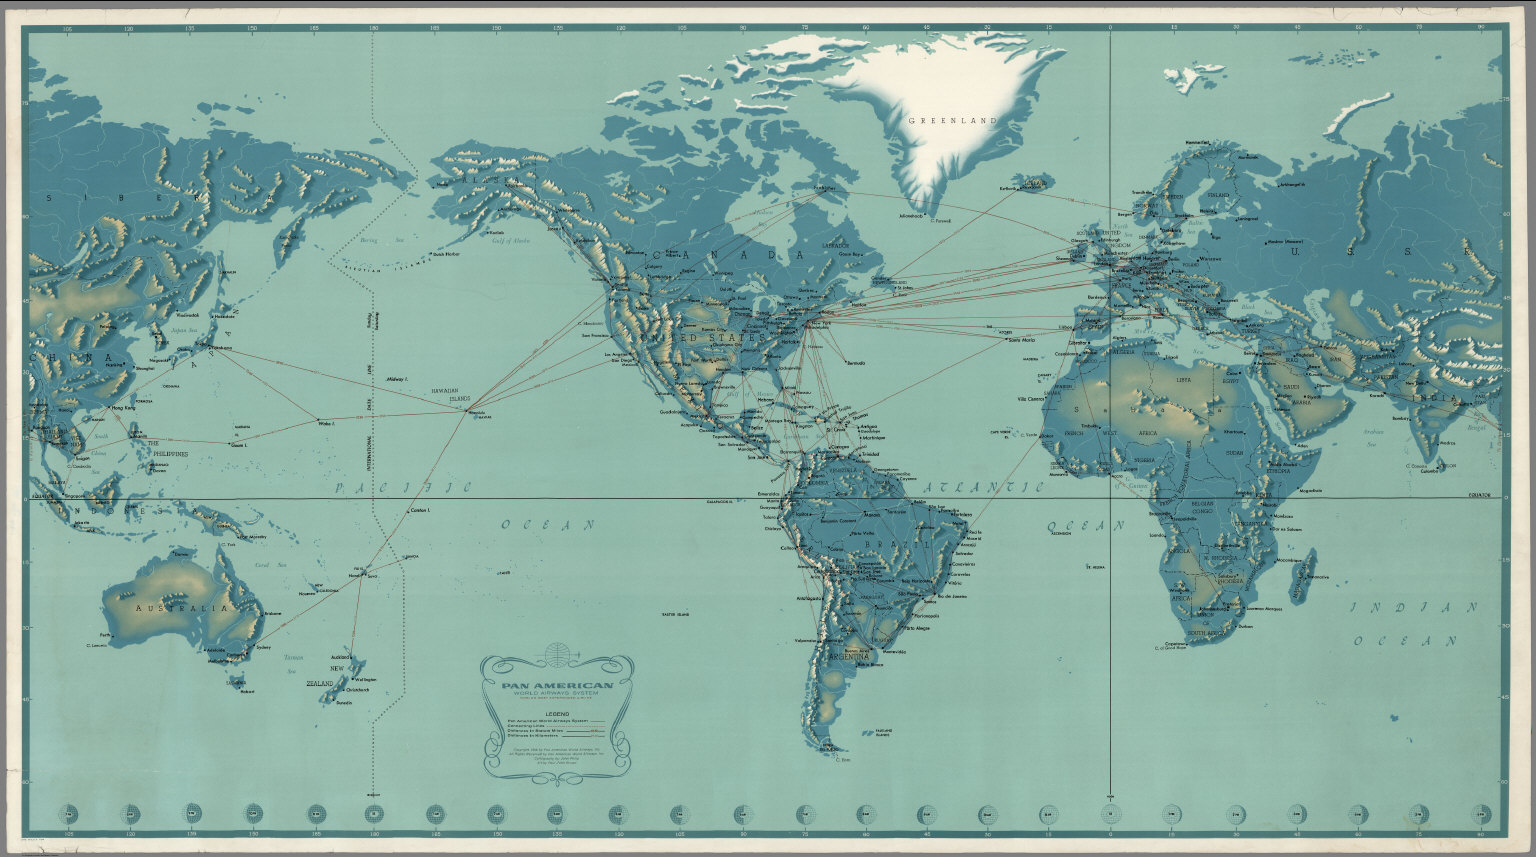 pan american world airways system